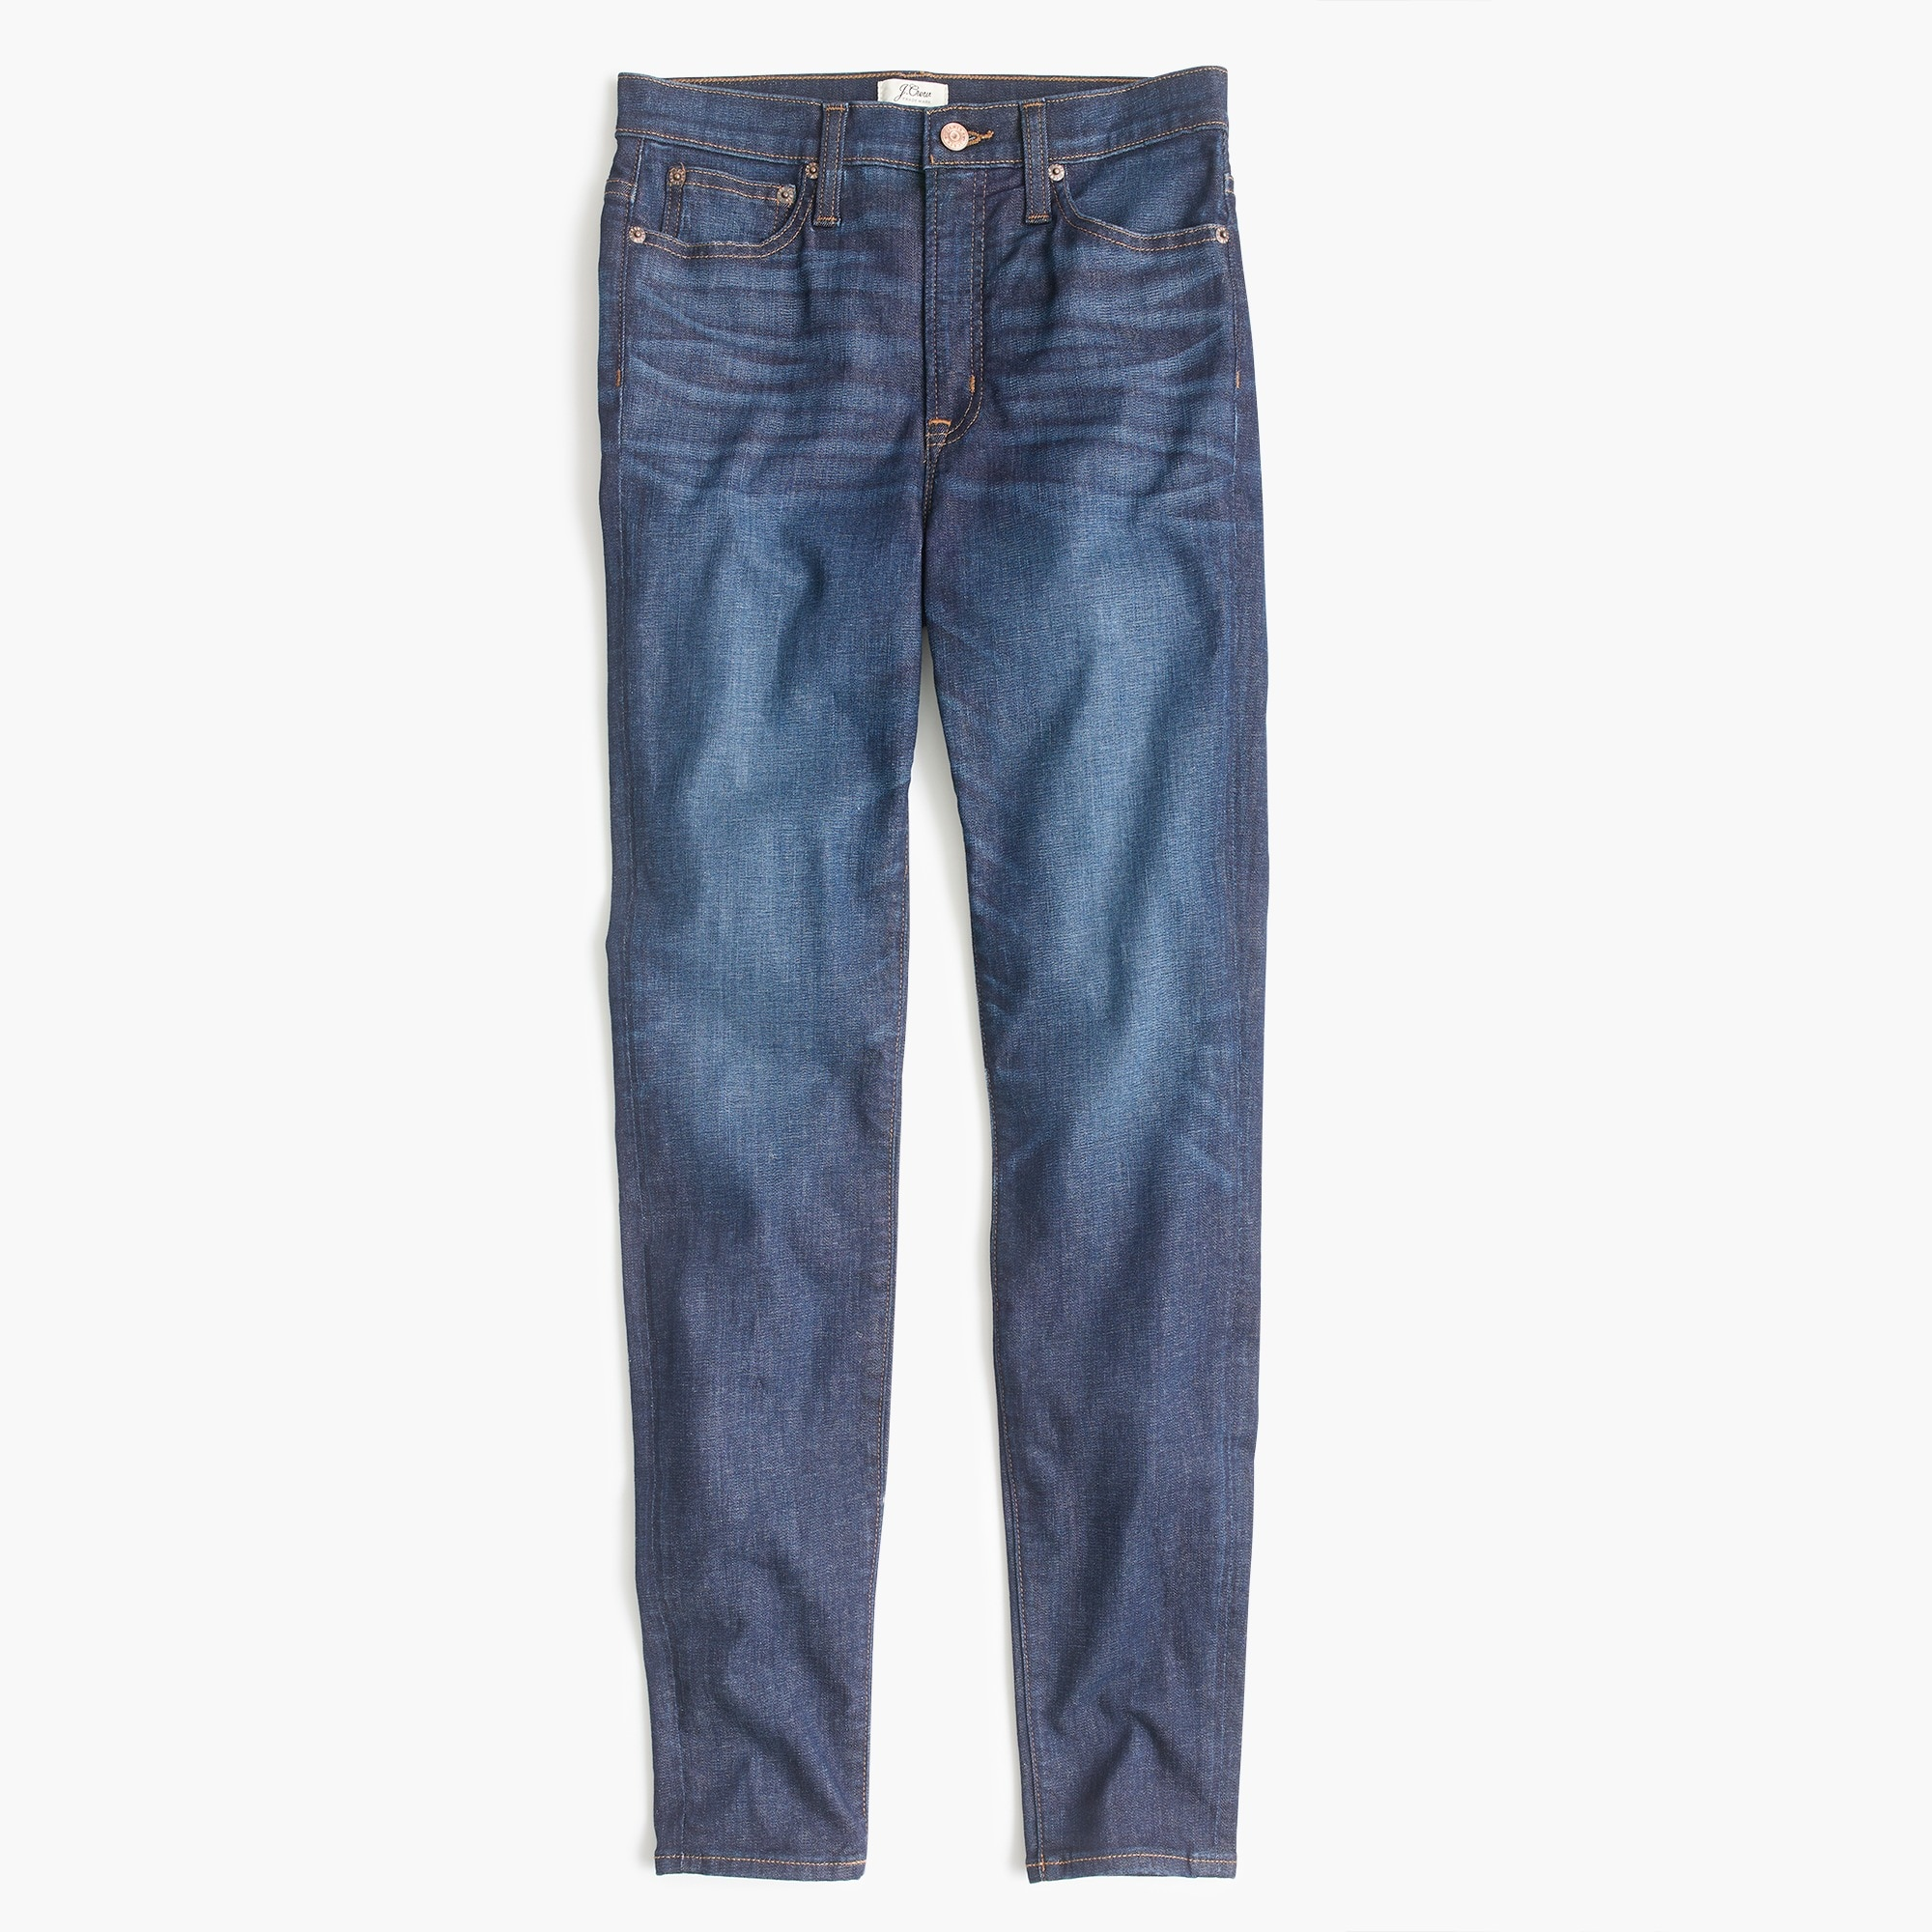 "Petite 10"" highest-rise toothpick jean in medium wash"